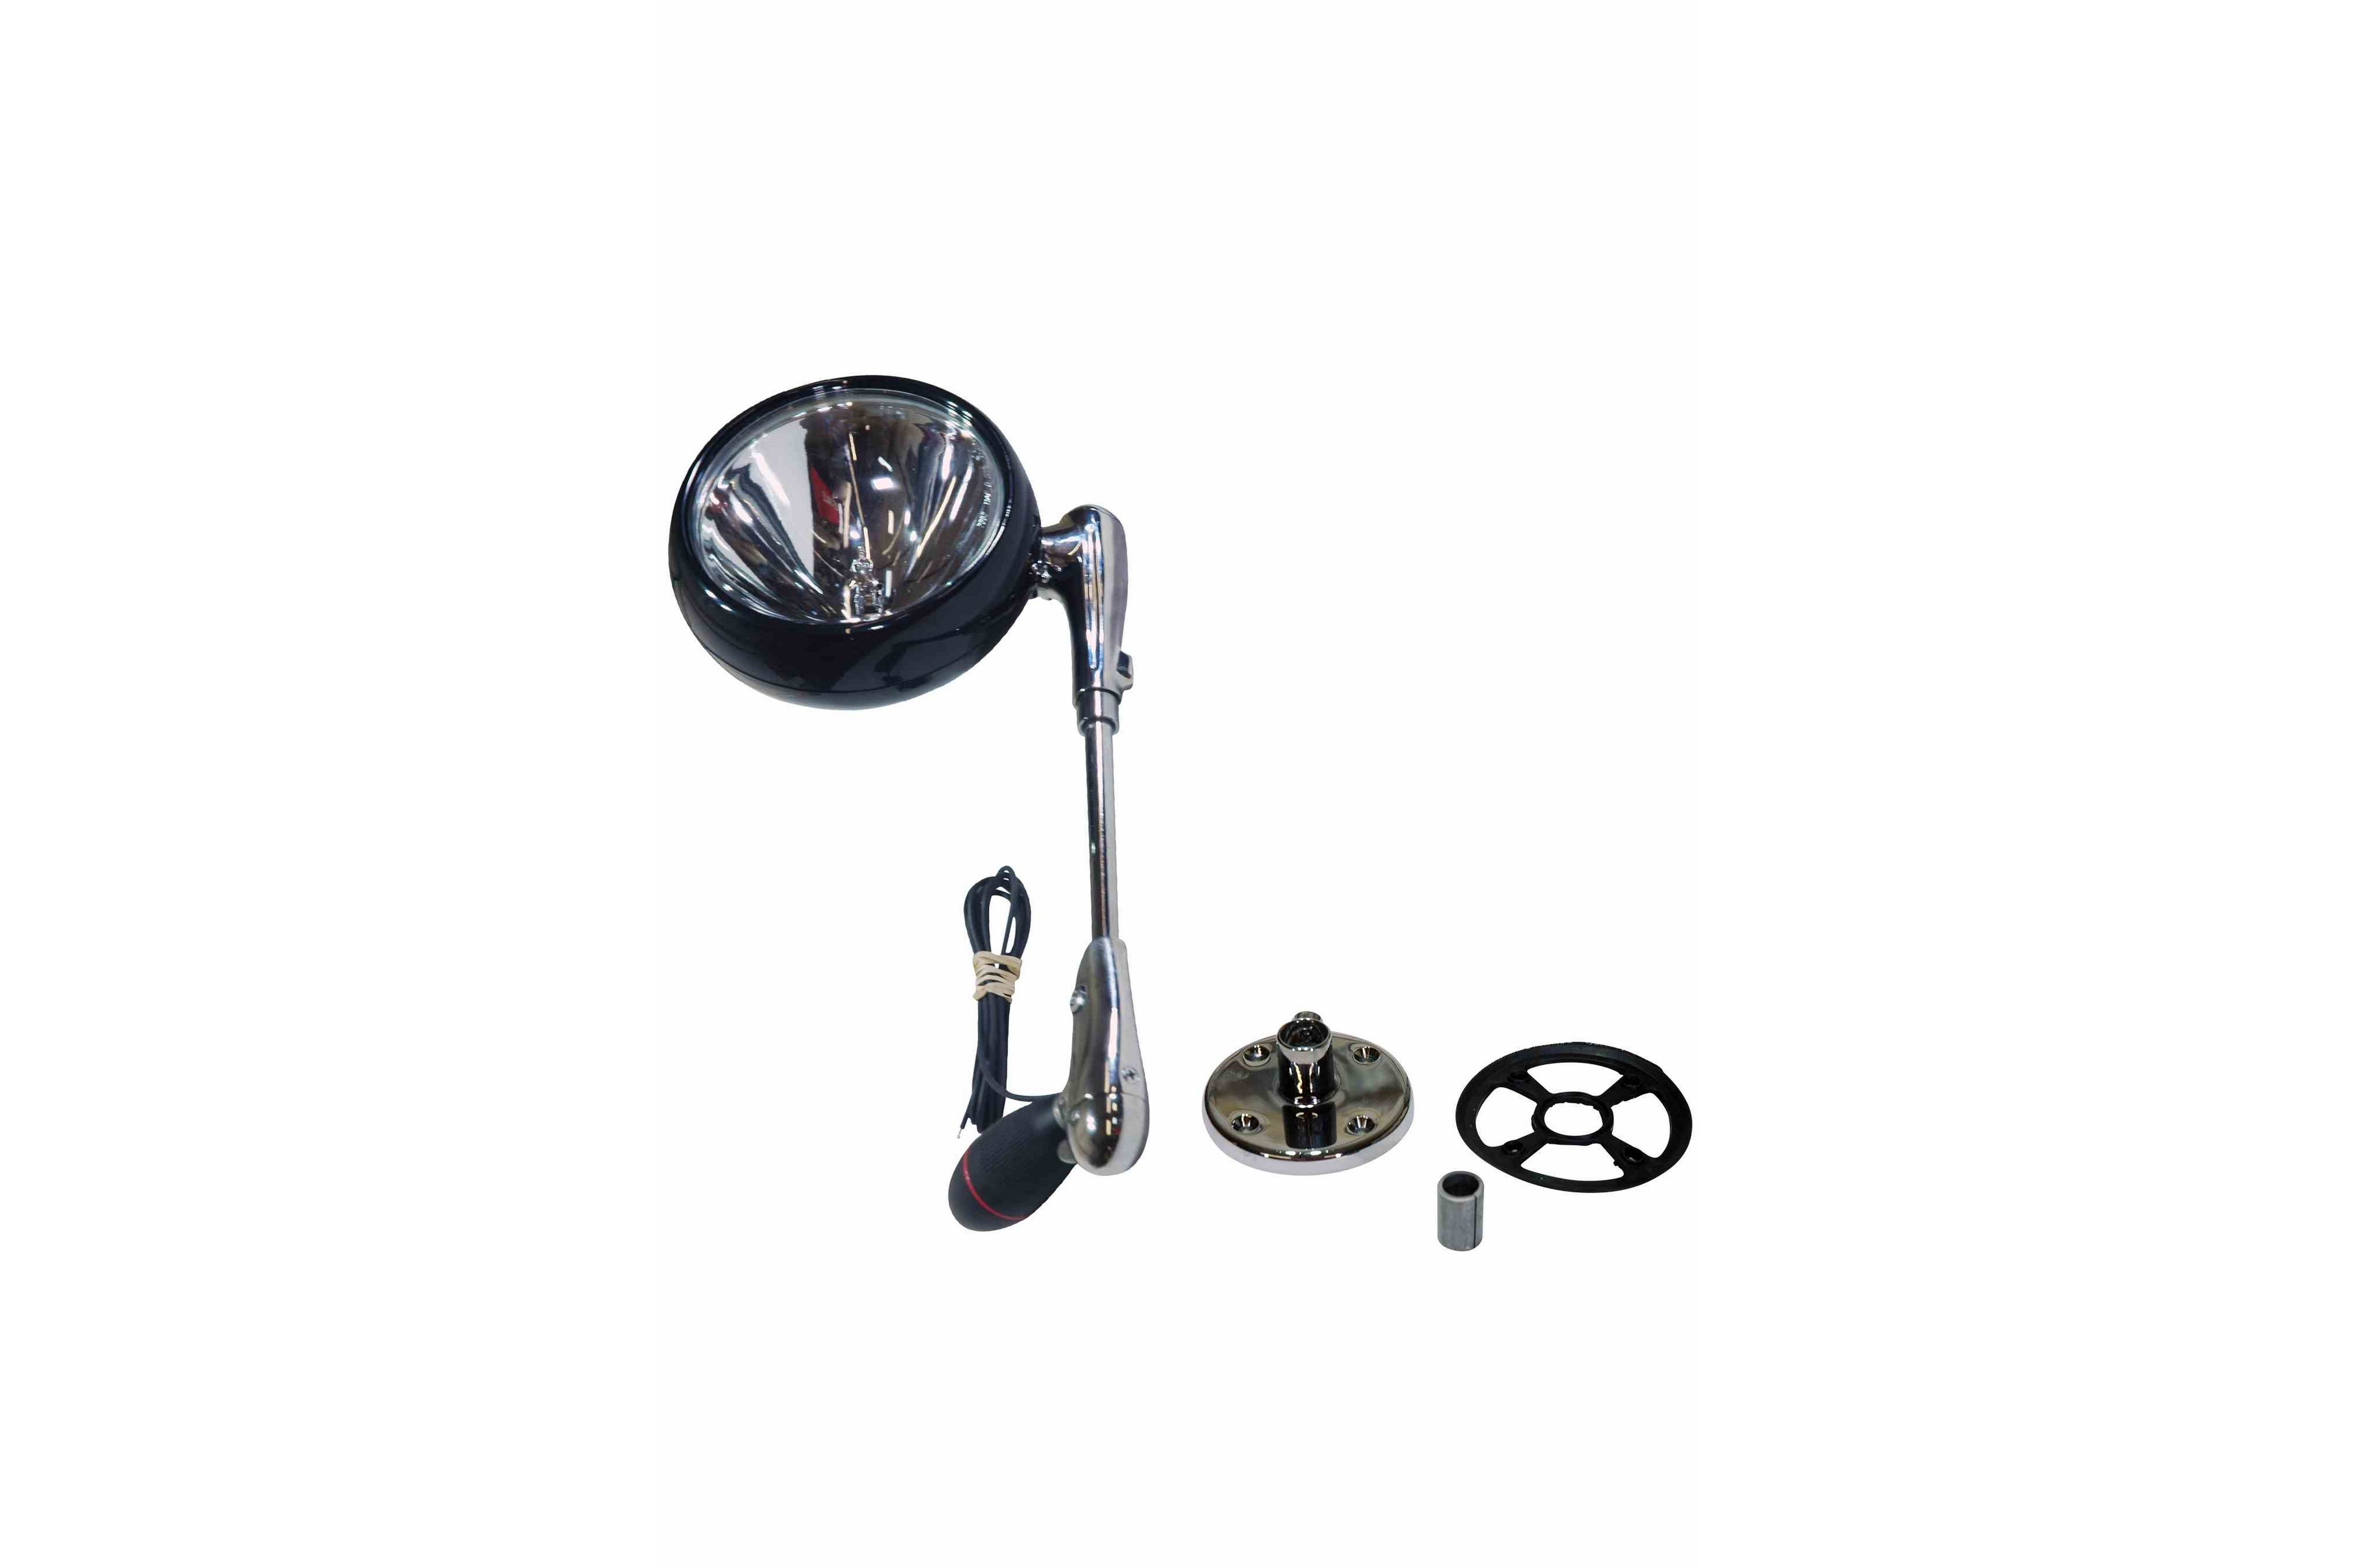 Roof Mount Light Rfm 17 5 24 24v Dc W 17 5 Inches Of Post From Center Of Lamp To Center Of